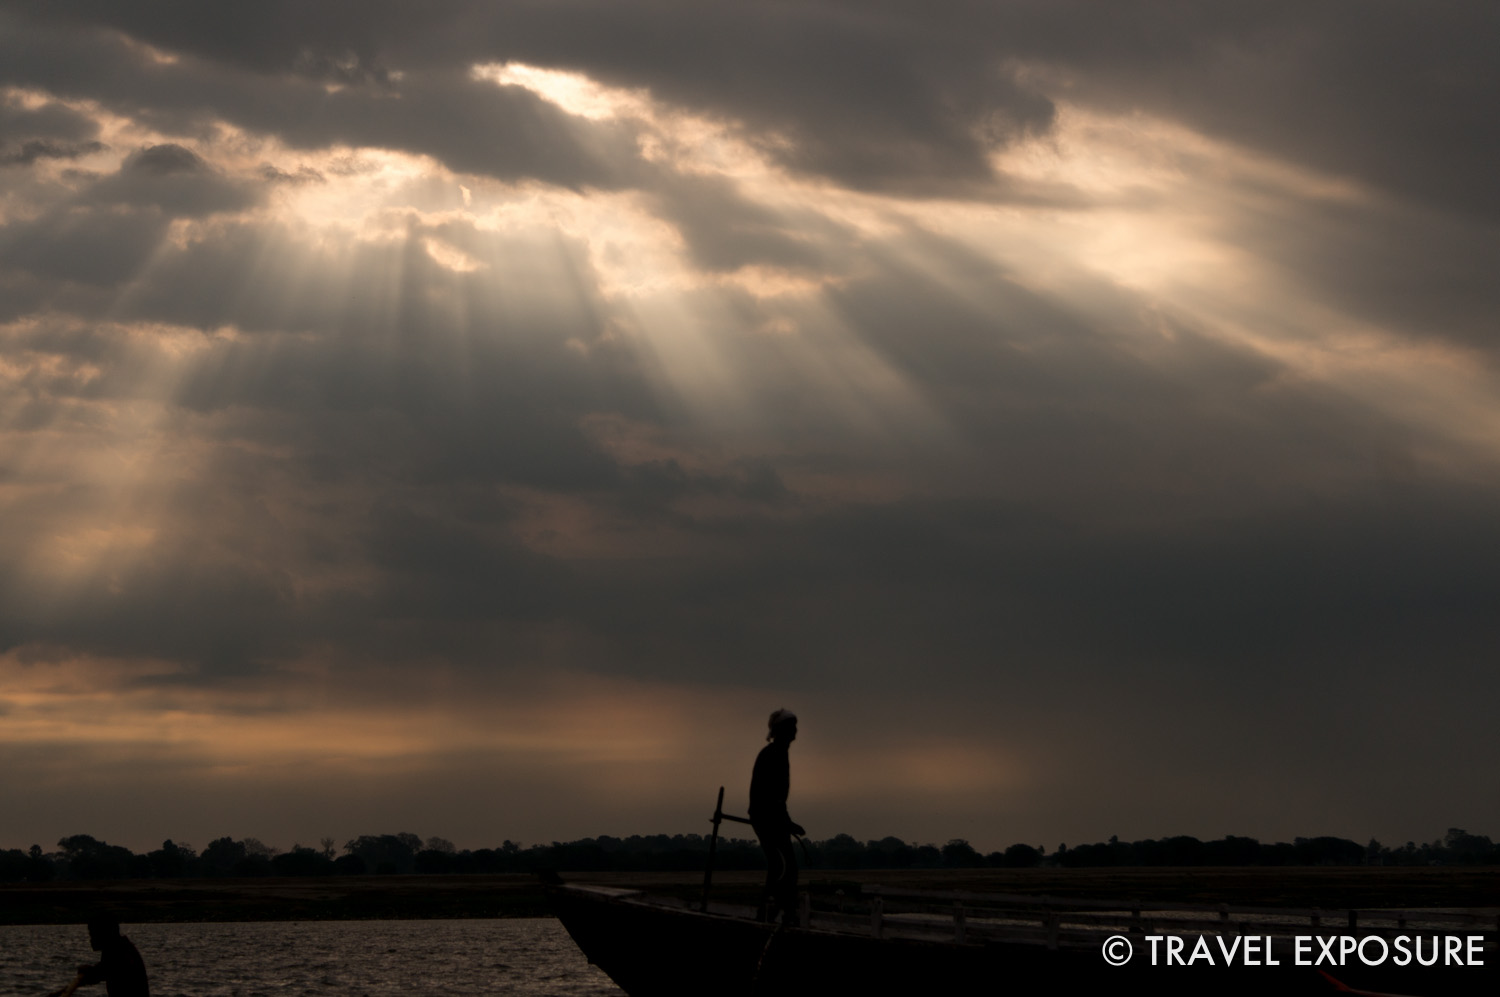 Sunrise on the Ganges river in Varanasi